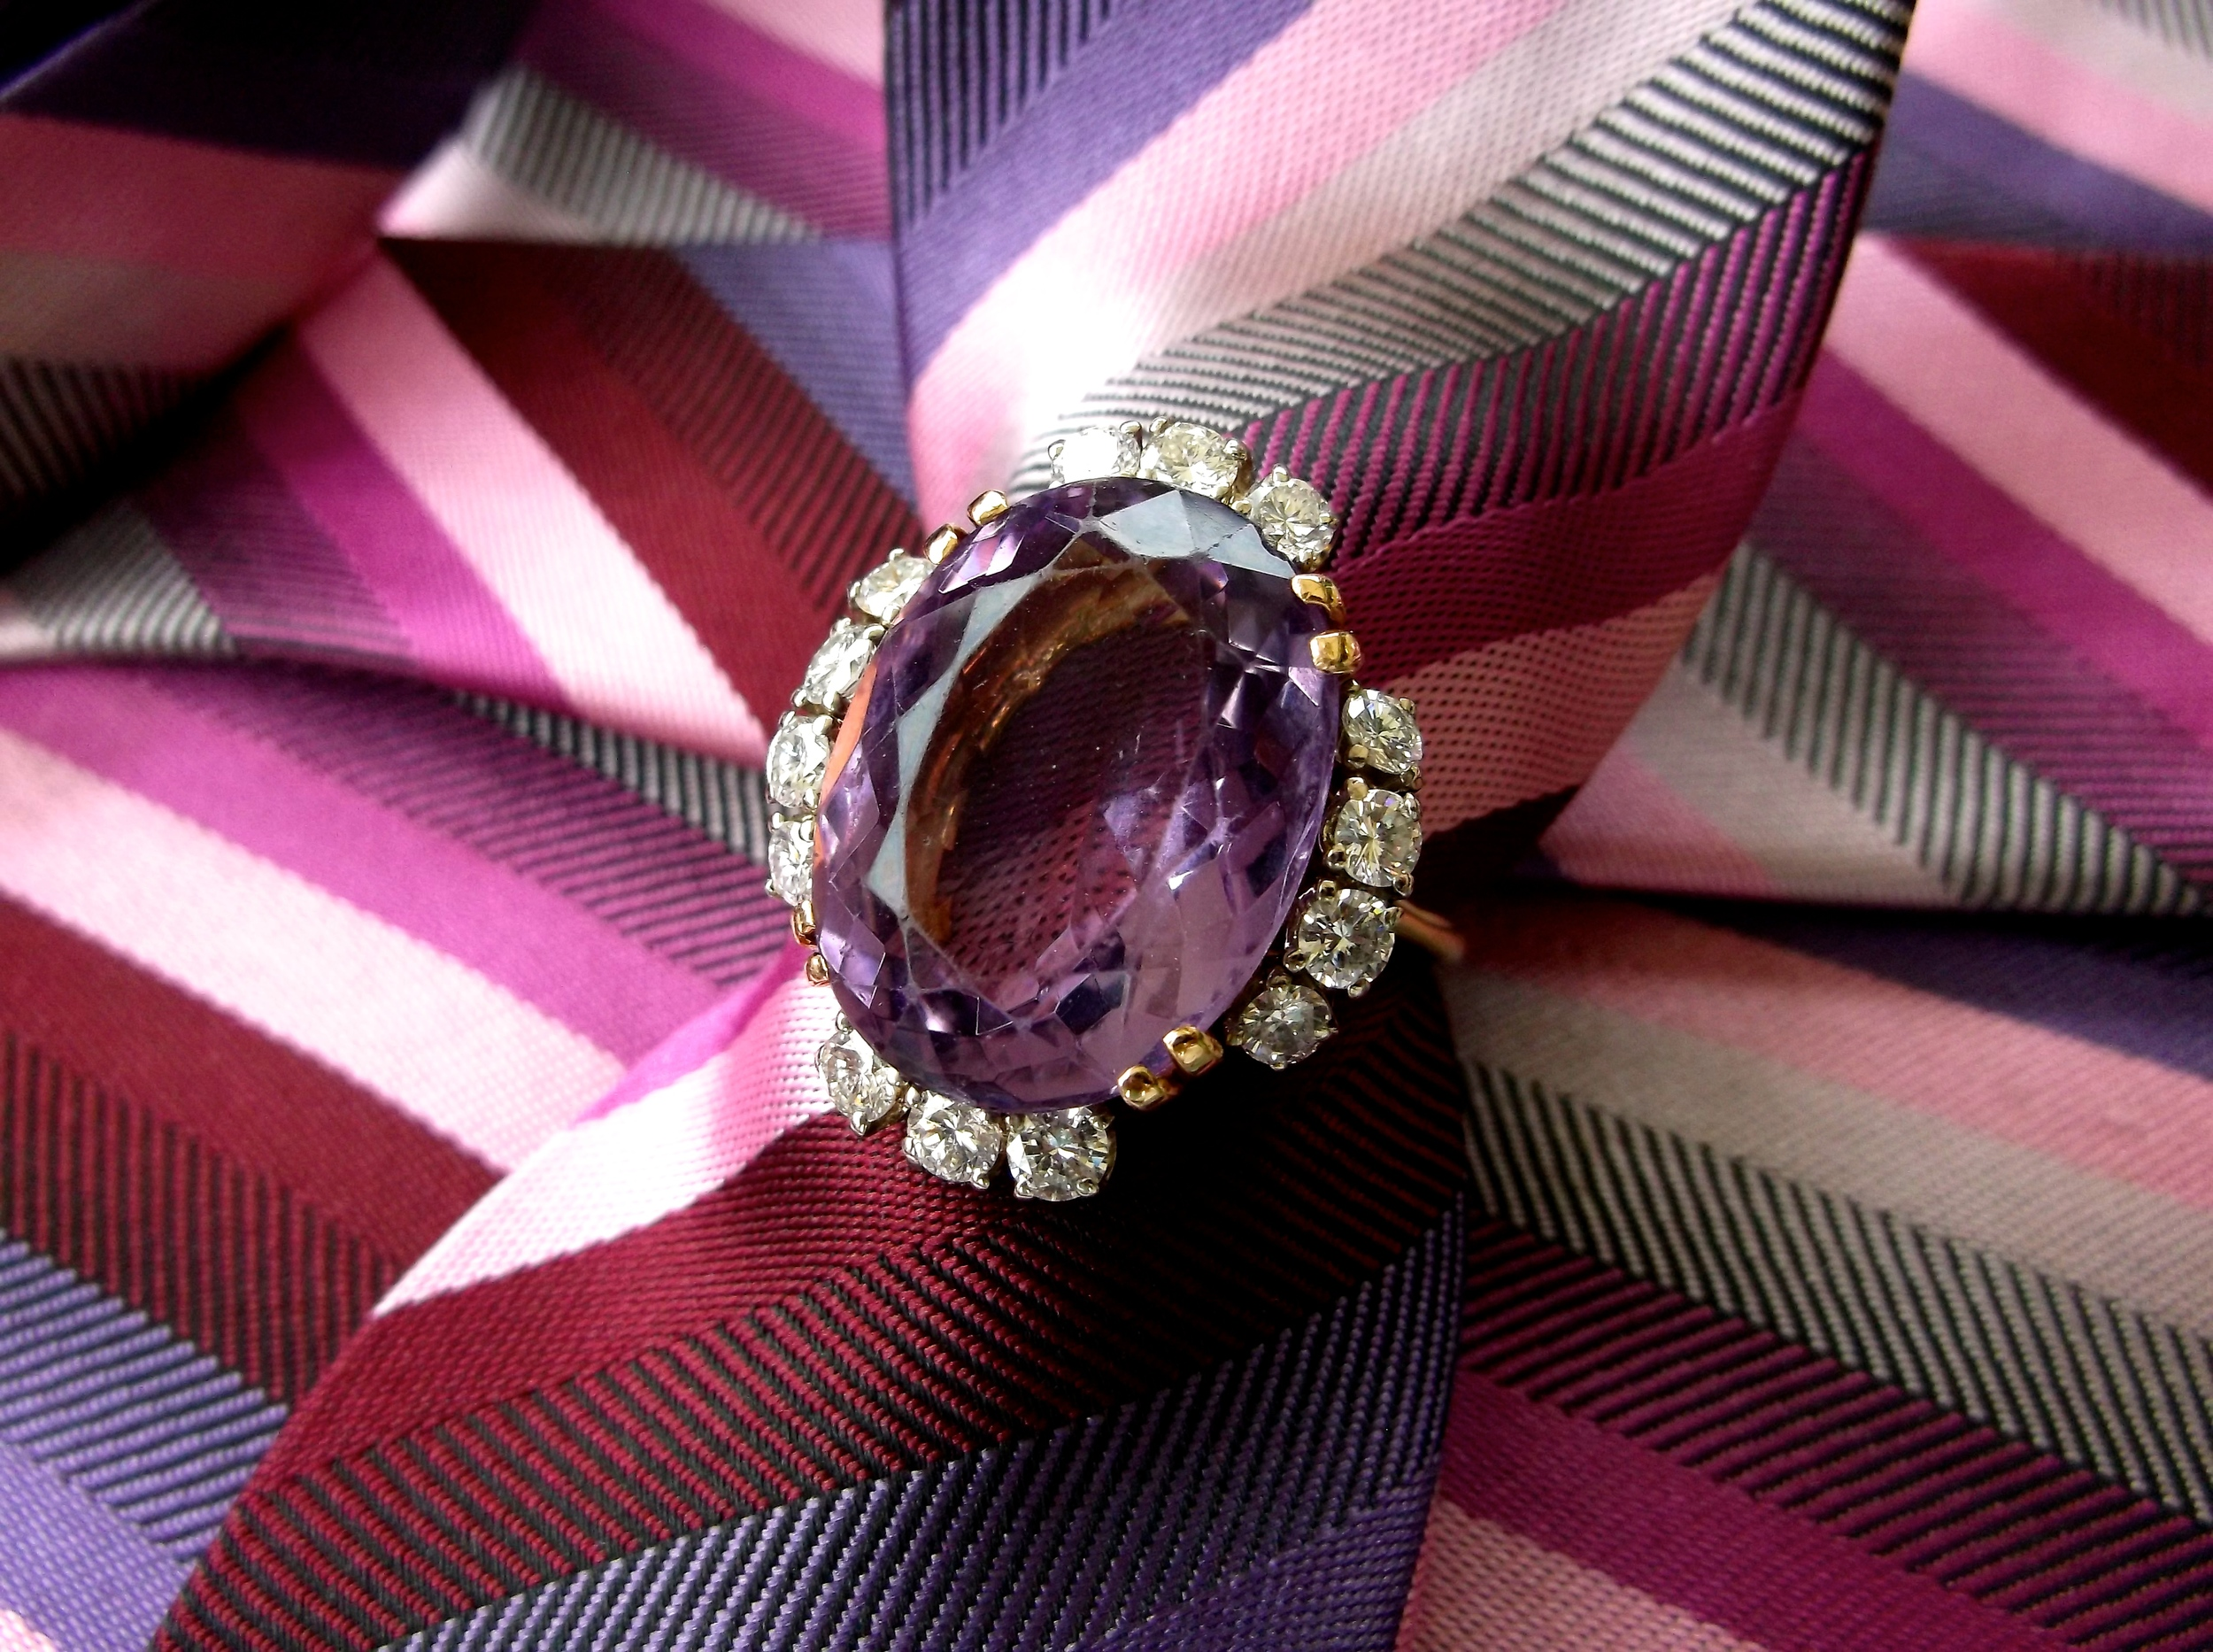 SOLD - Impressive 15.0 carat amethyst ring surrounded by 1.40 carats total weight in diamonds set in yellow gold.